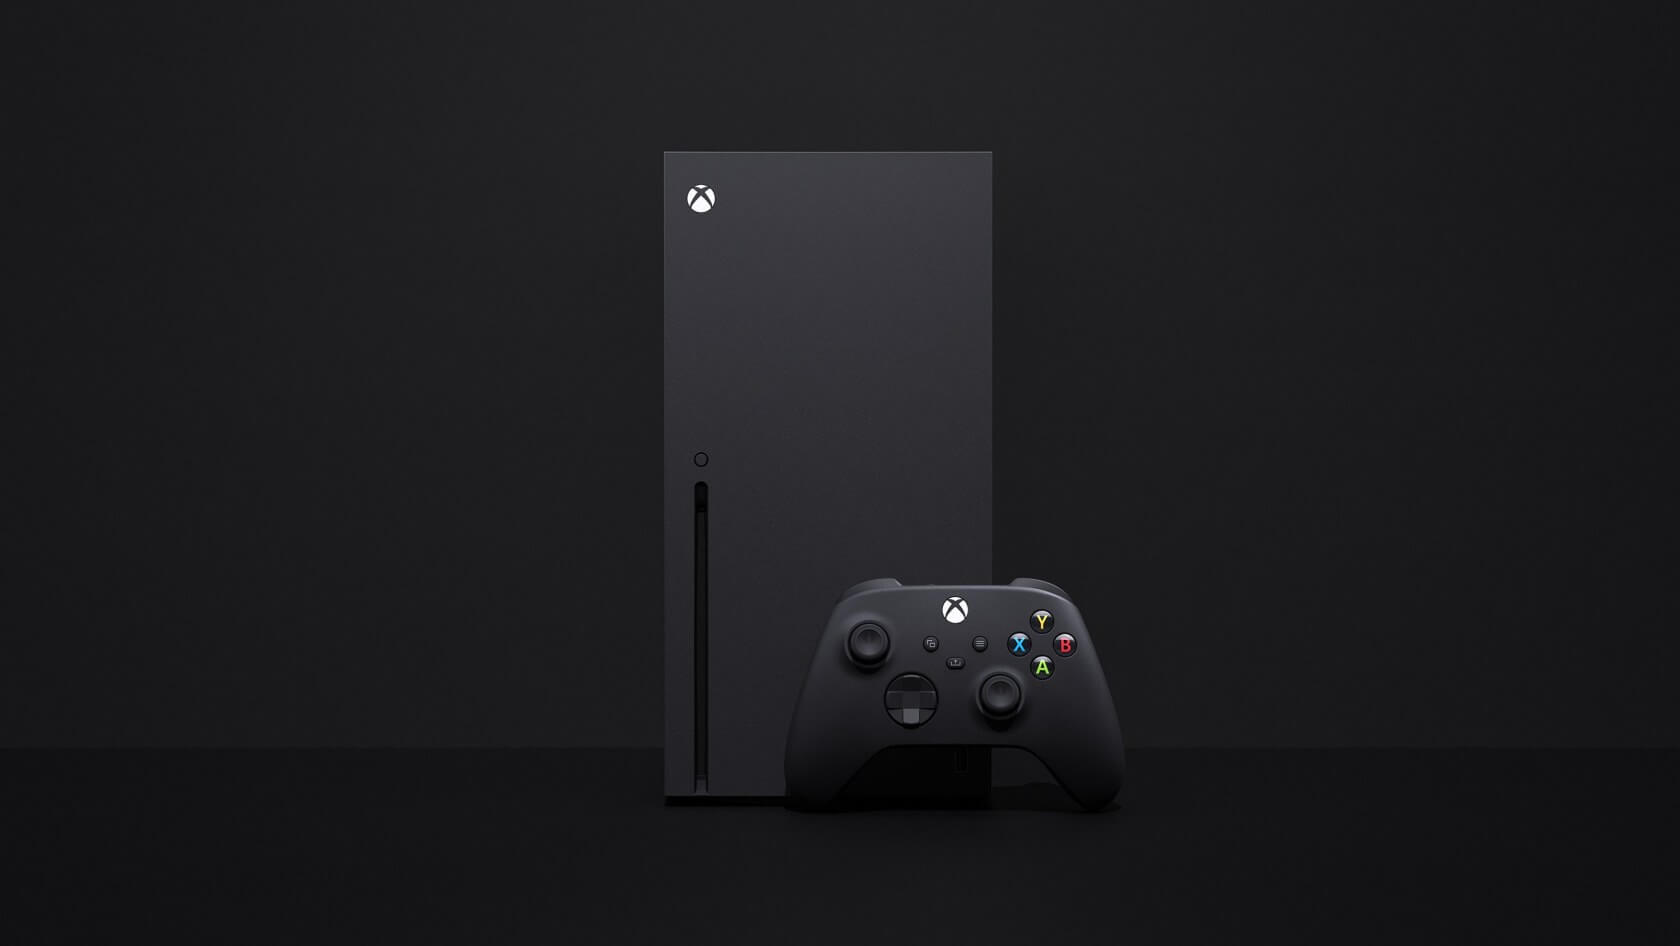 The Xbox Series X is launching worldwide this November